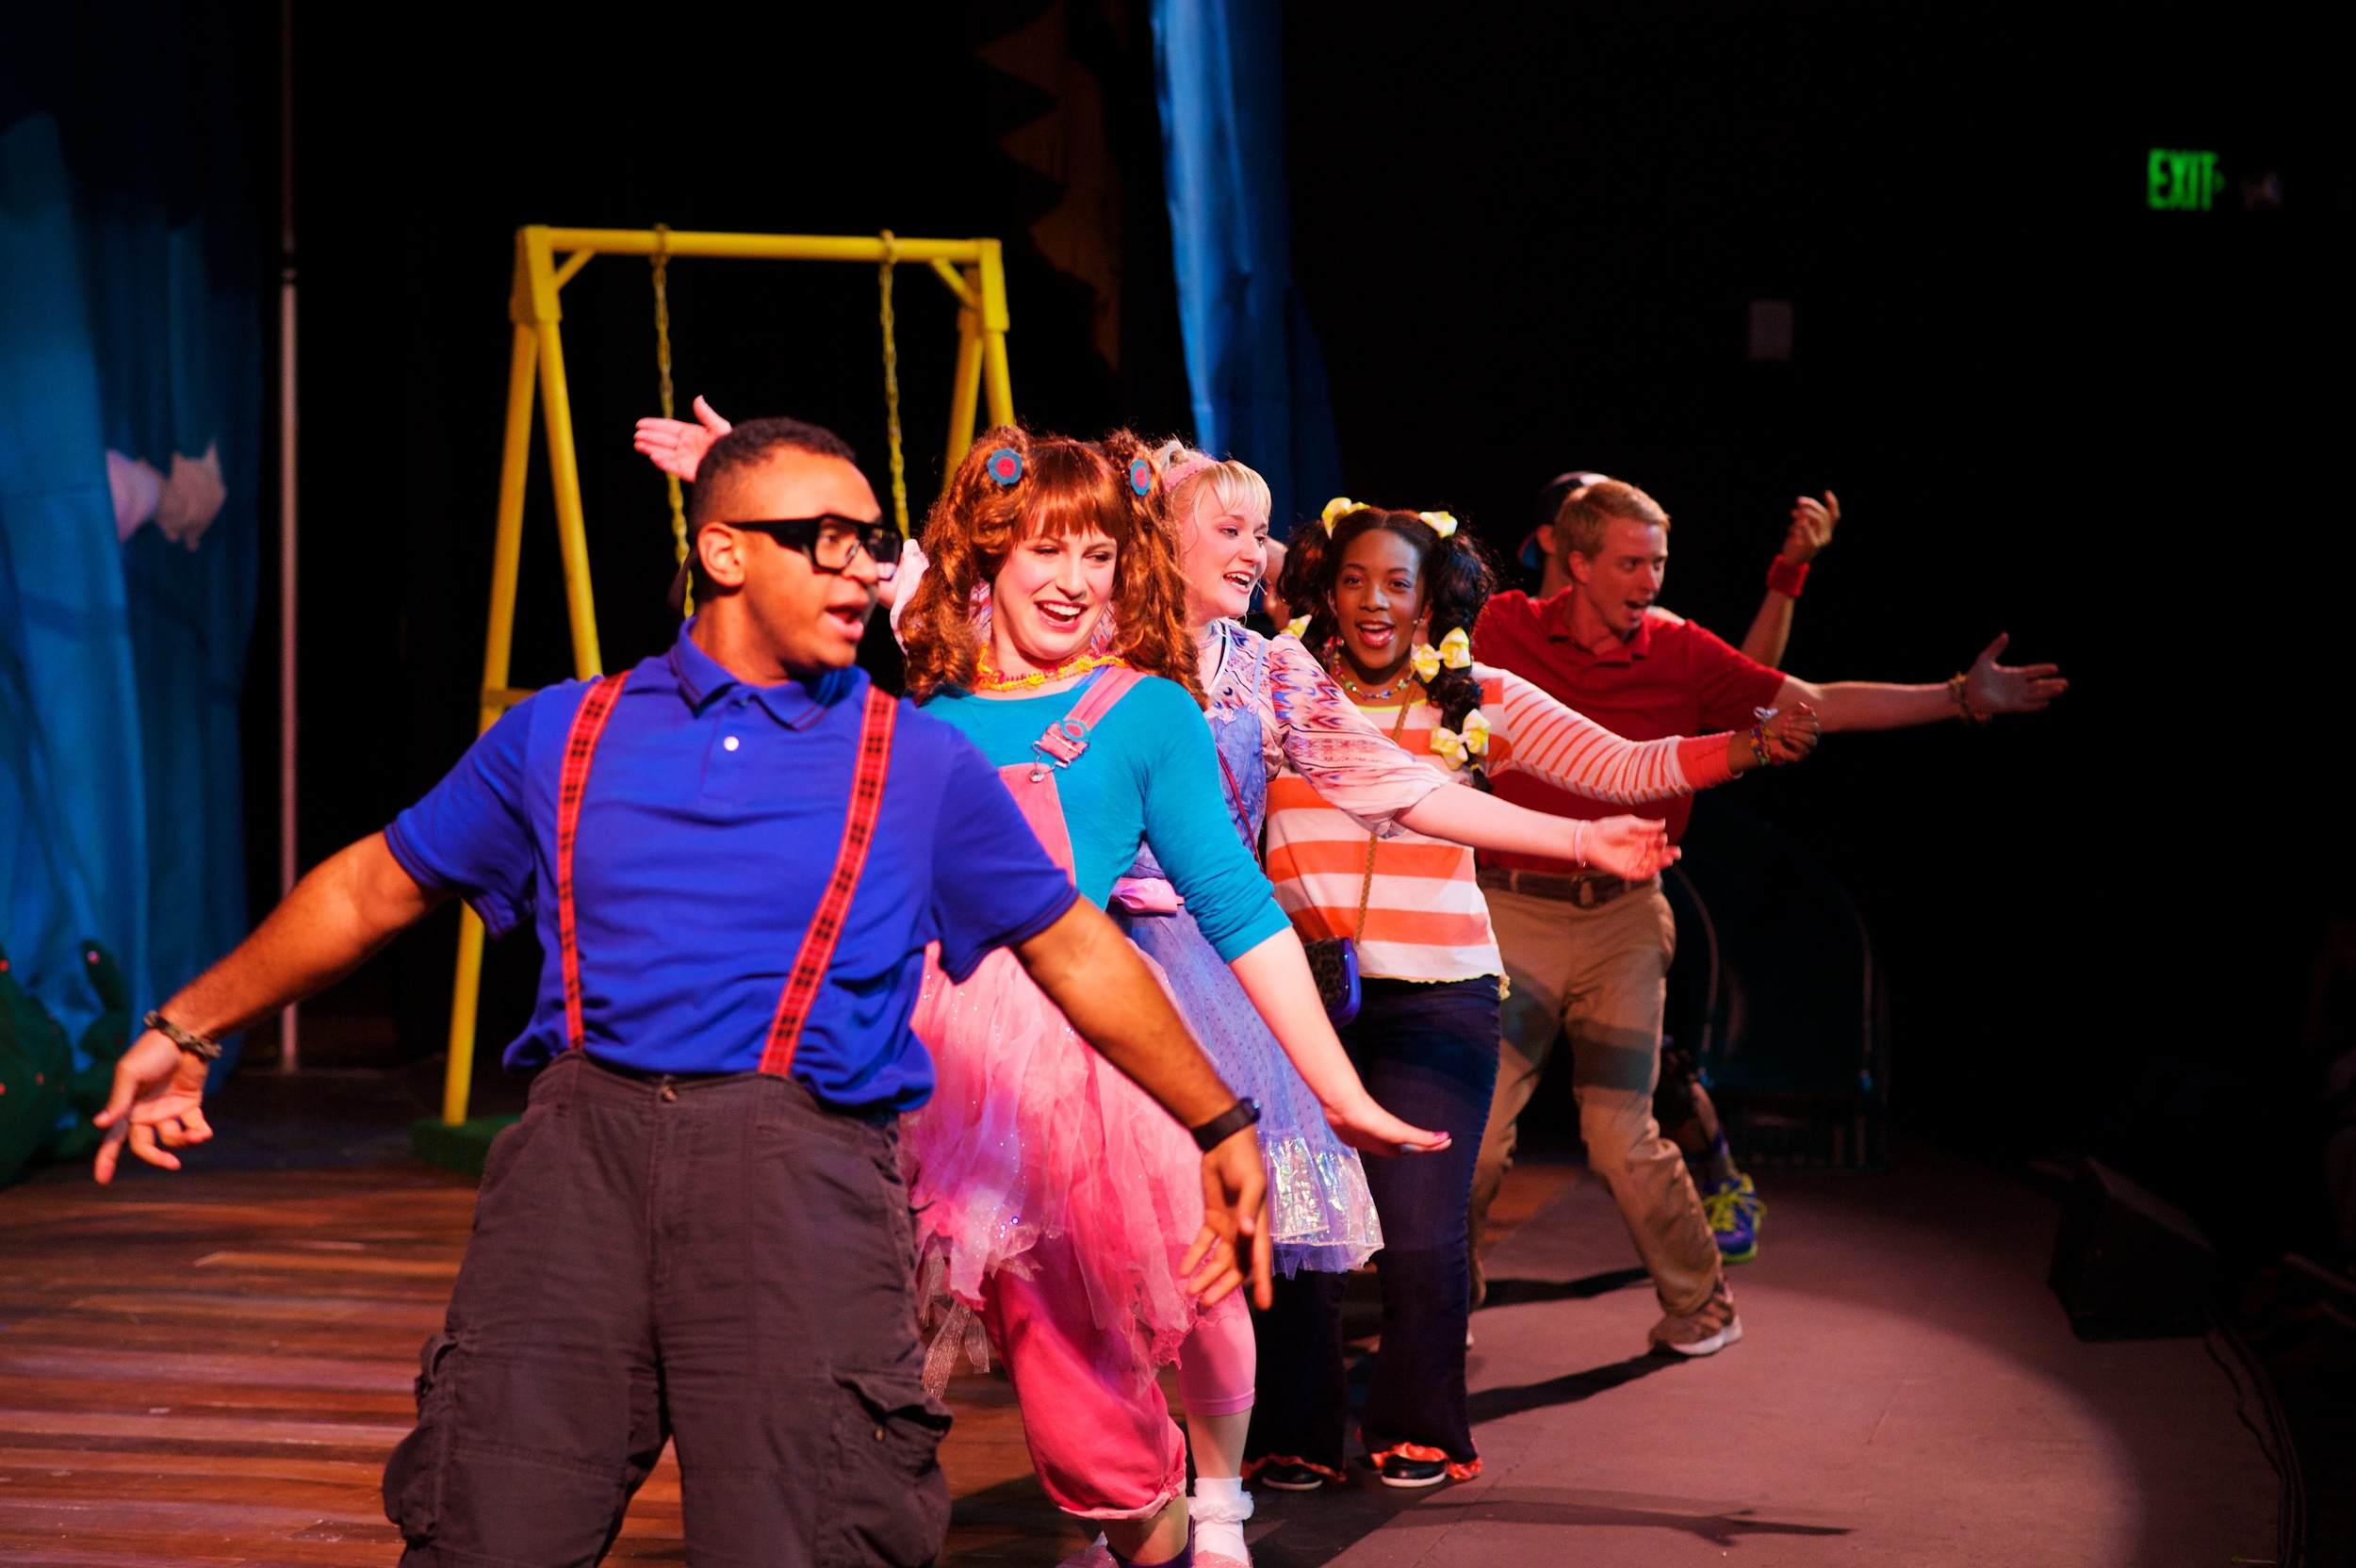 Benjamin with the cast of Stinky Kids at the Aurora Theatre, directed by Jaclyn Hofmann.  Photo: Chris Bartelski